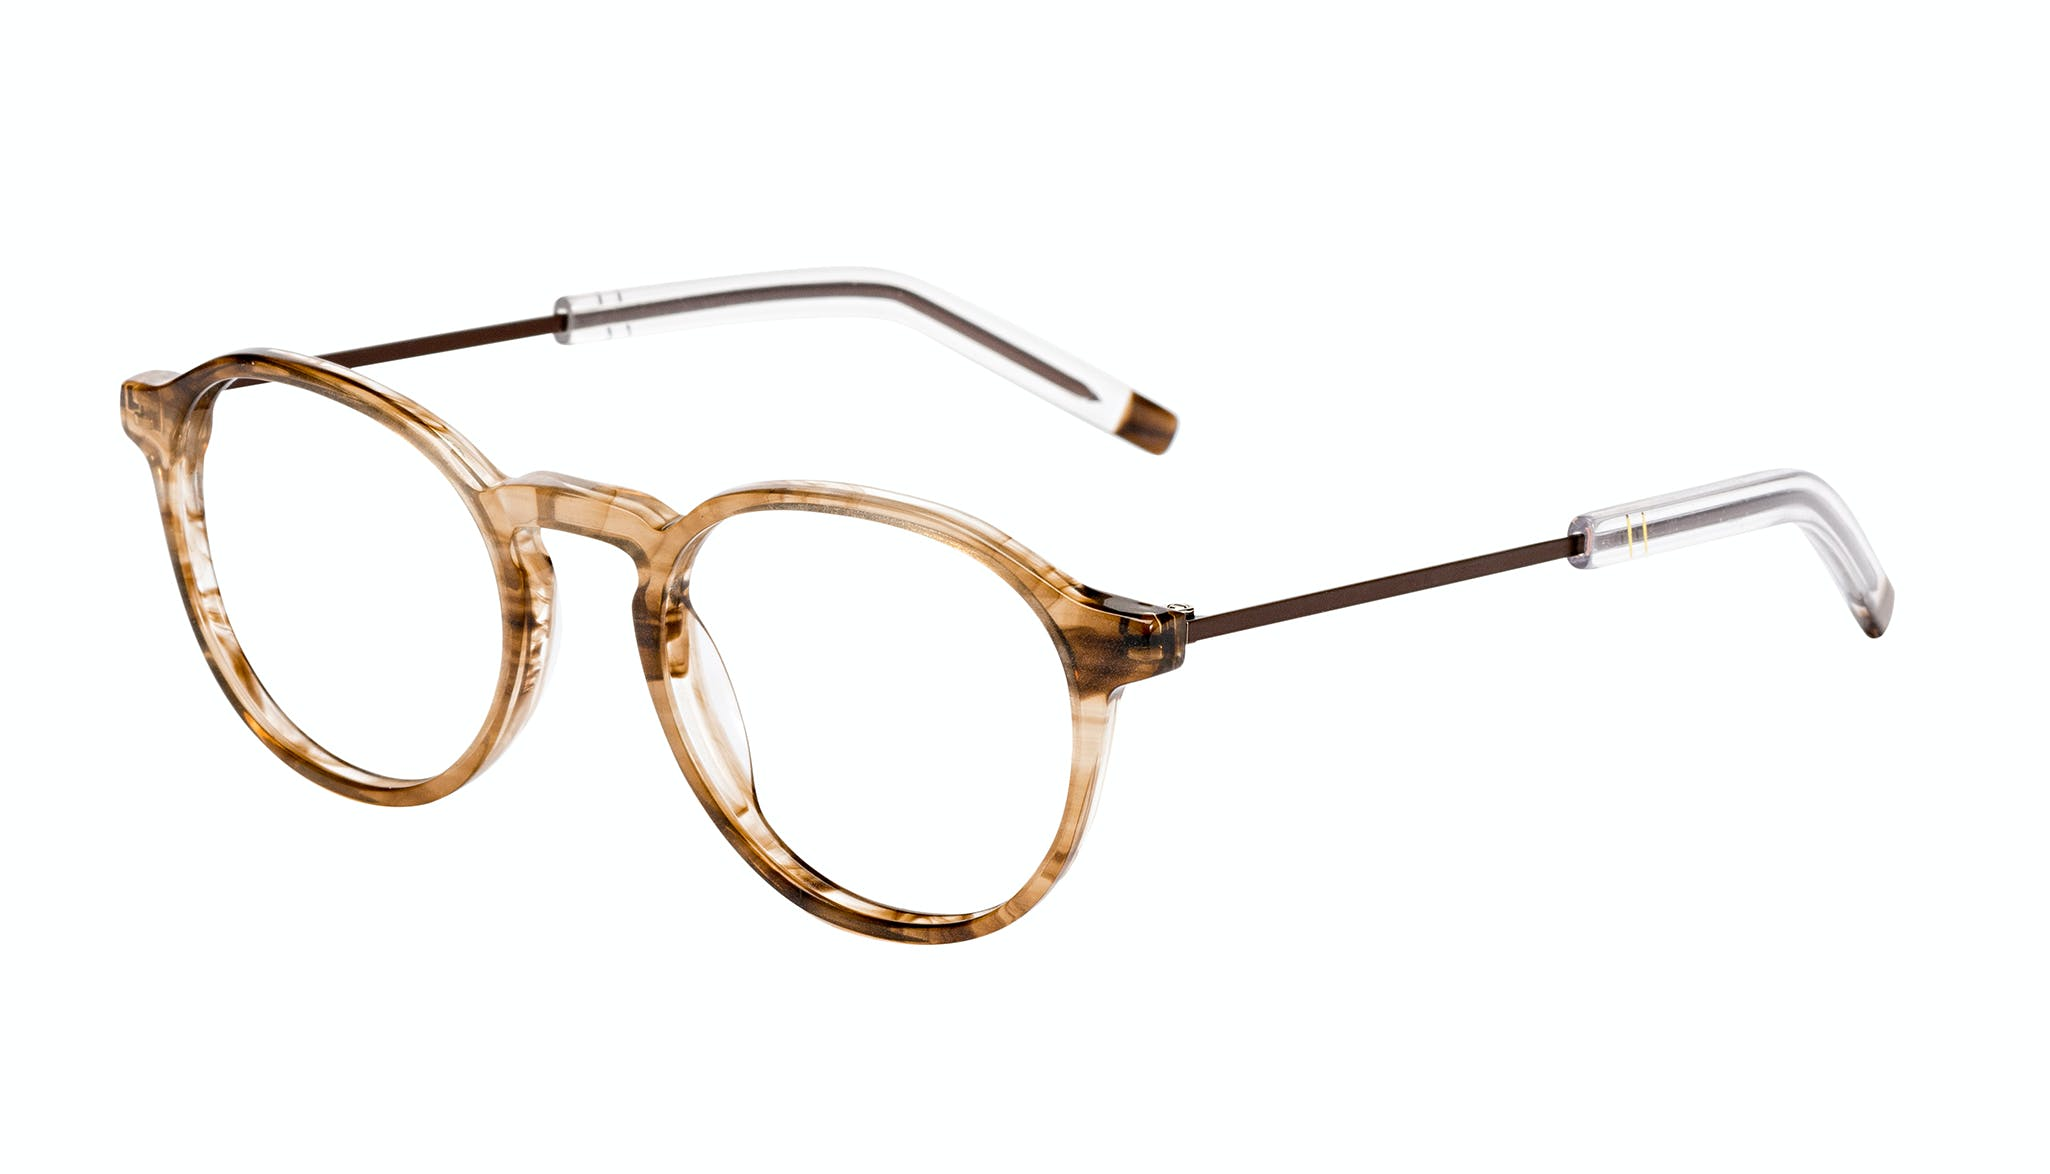 Affordable Fashion Glasses Round Eyeglasses Men Prime Smokey Havana Tilt